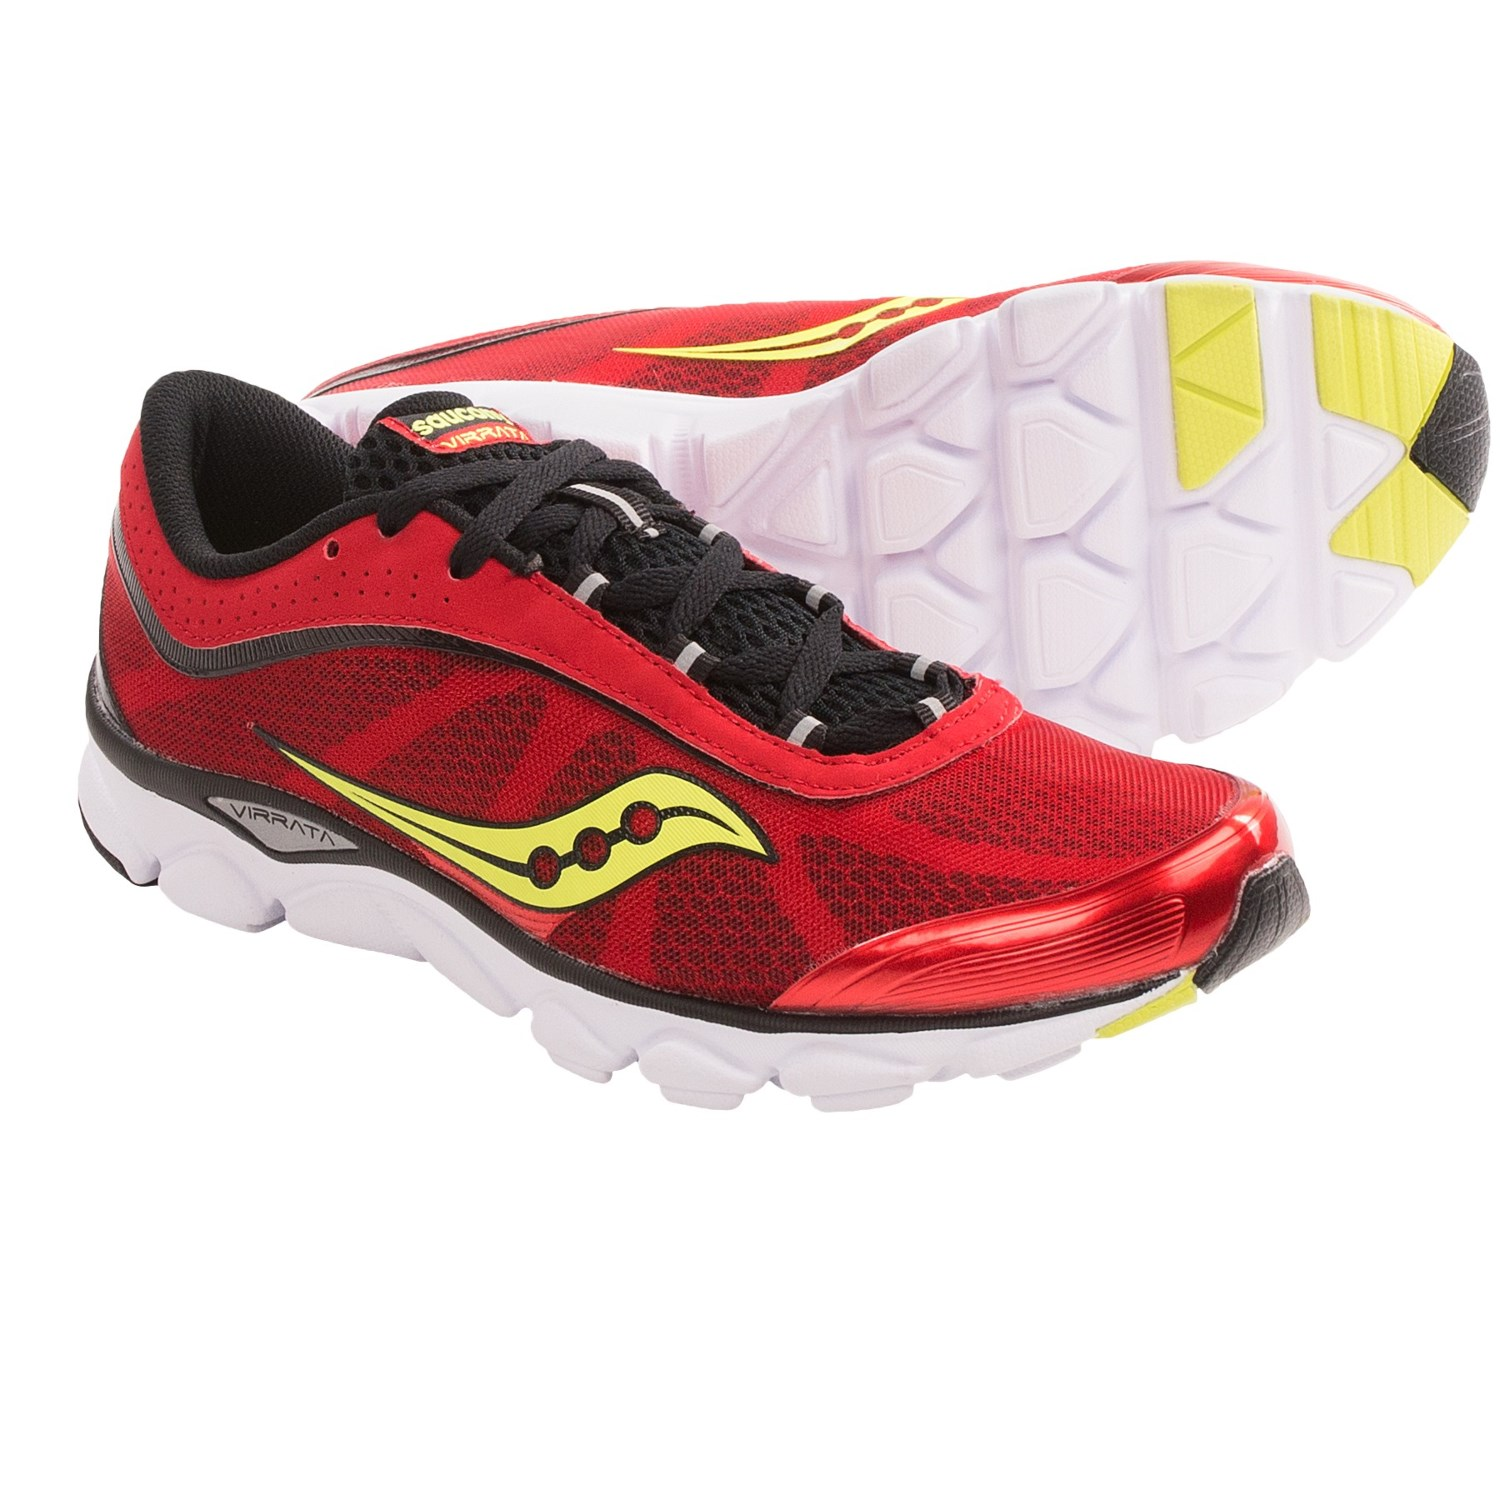 saucony virrata running shoes minimalist for